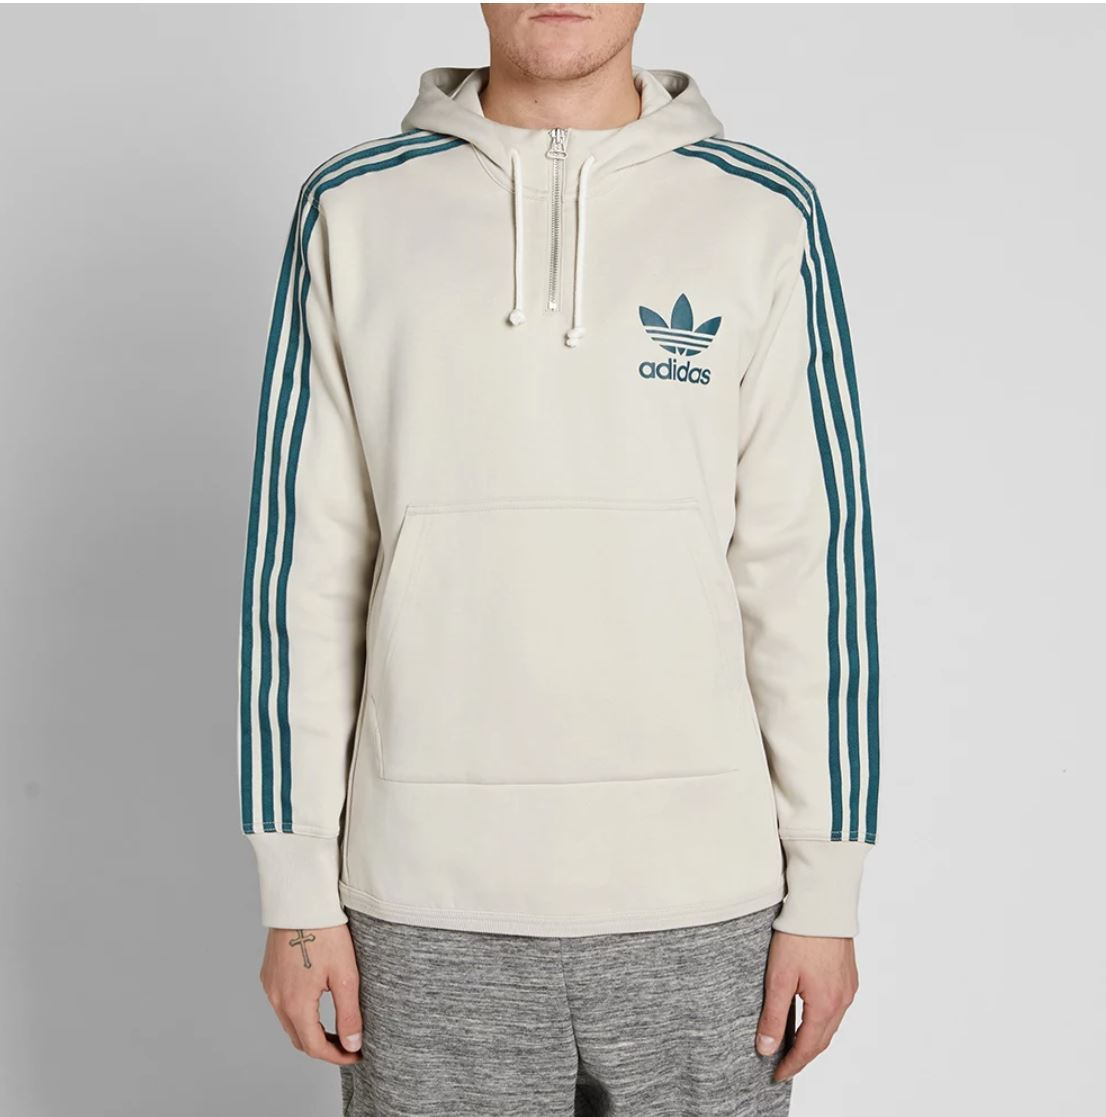 4d6be926bcb6 New Adidas Originals 2018 AC Terry Pullover Hoodie In color Beige Jacket  BK7193